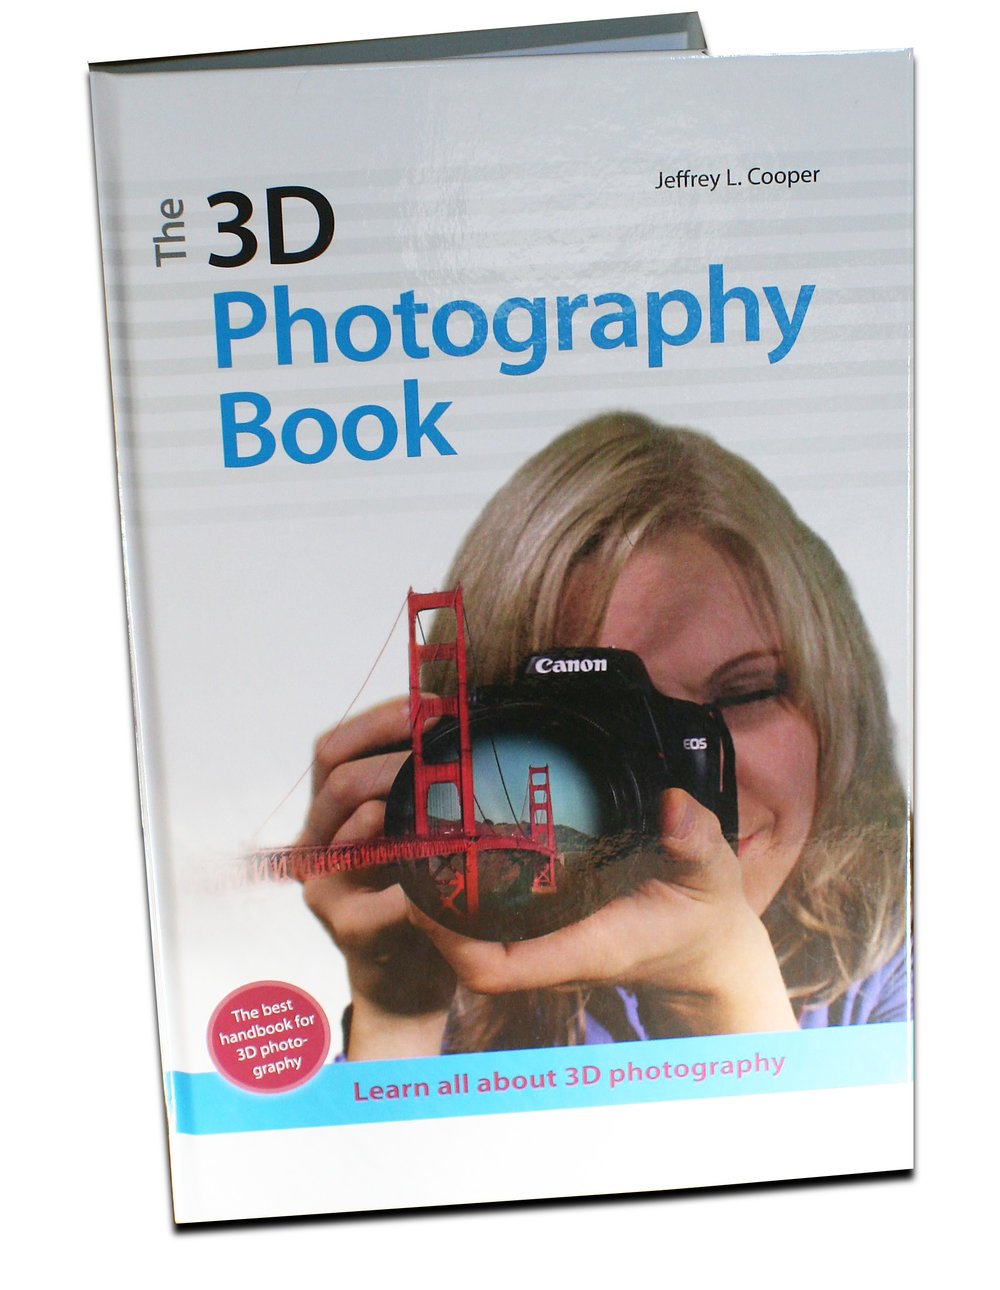 The 3D Photography Book has a litho or printed 4-C cover with glossy film lamination